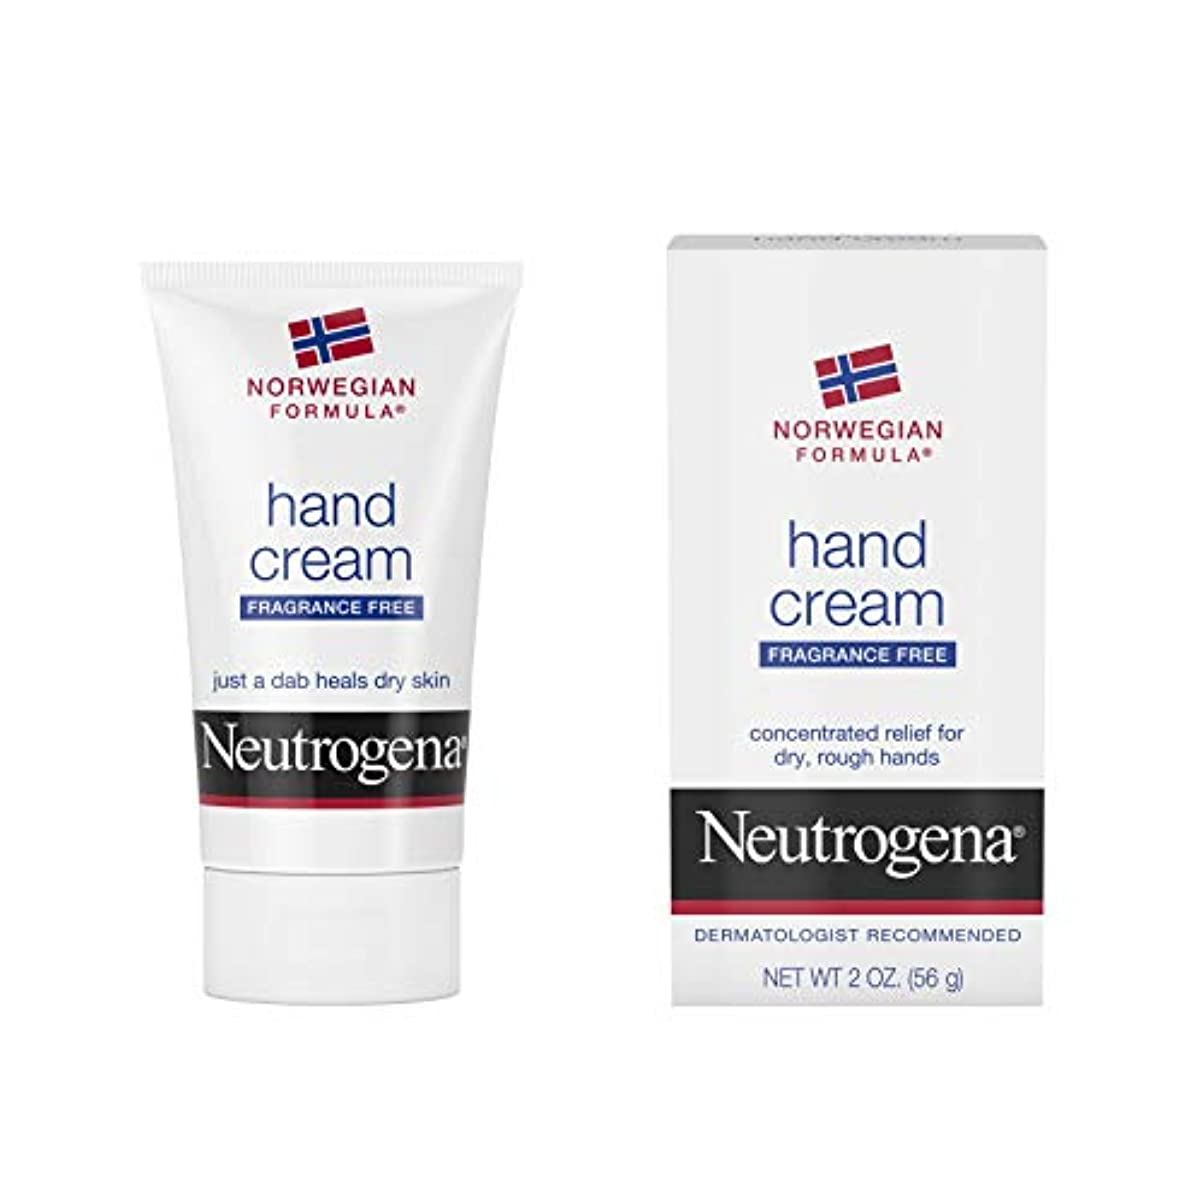 またね超える想像力Neutrogena Norwegian Formula Hand Cream Fragrance-Free 60 ml (並行輸入品)